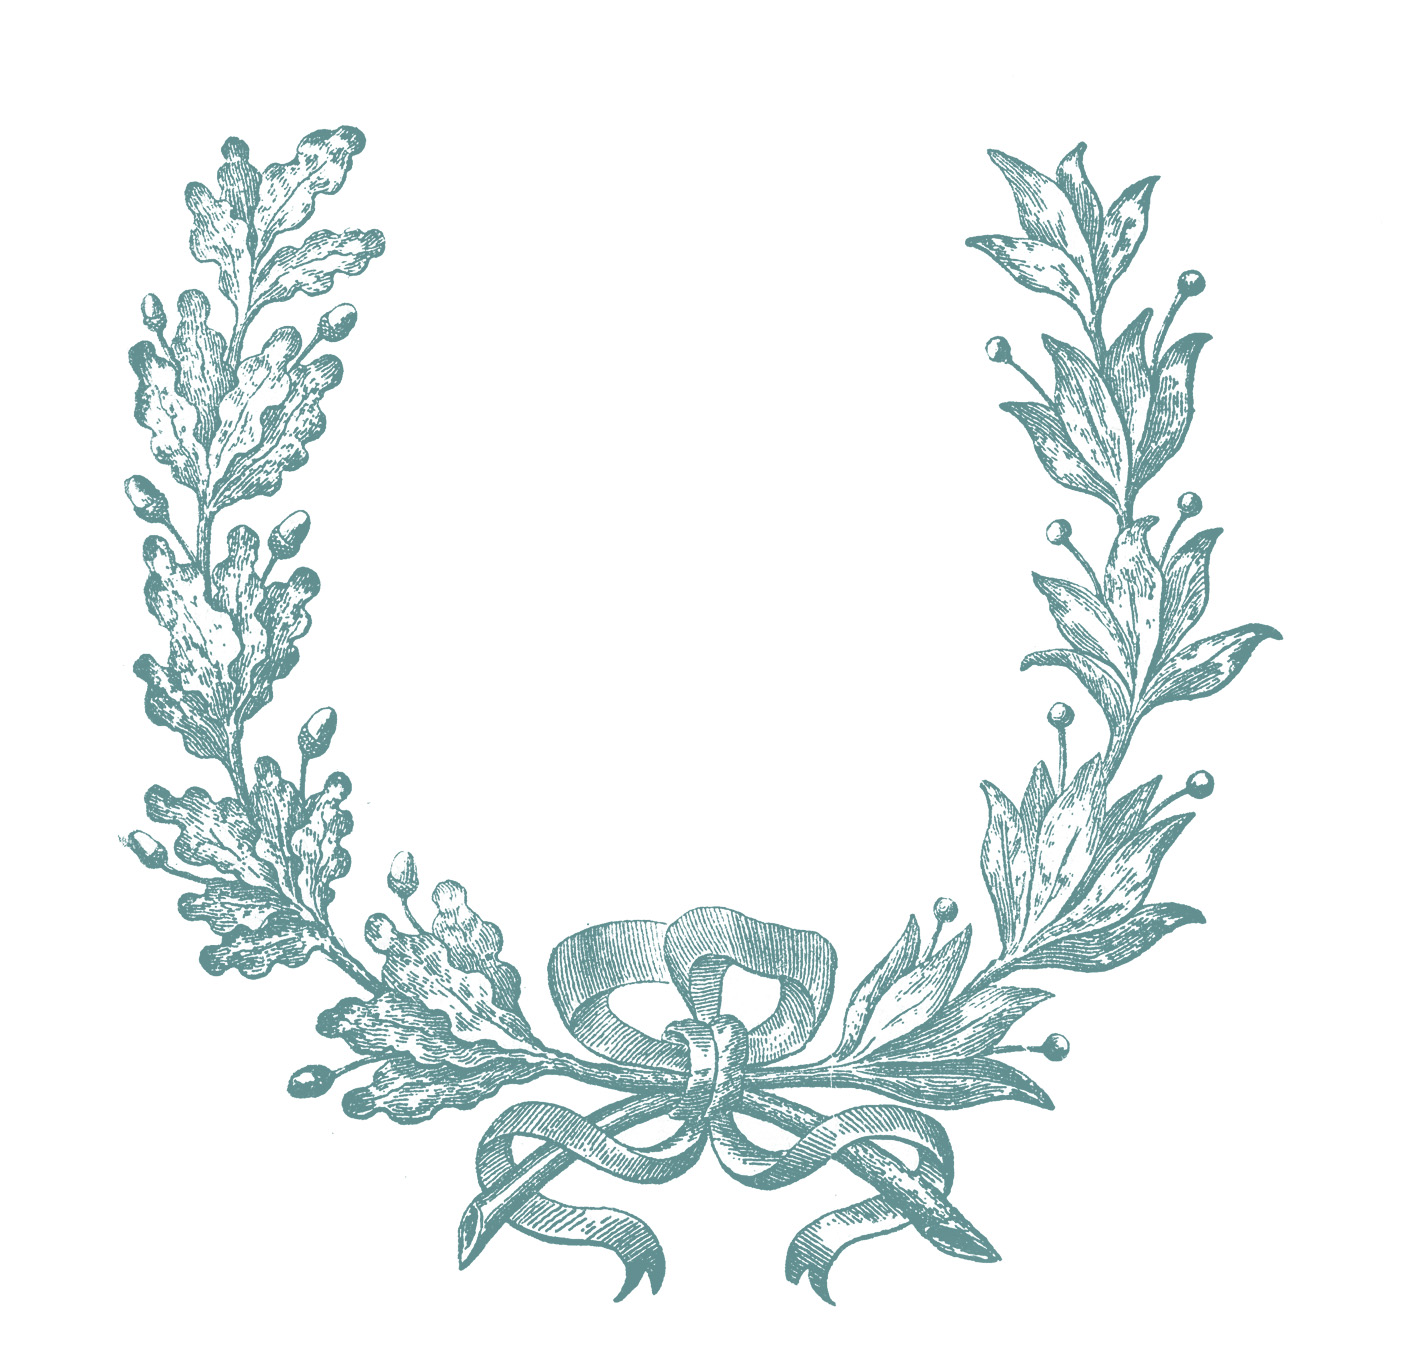 Wreath clipart vintage. Clip art french engraving